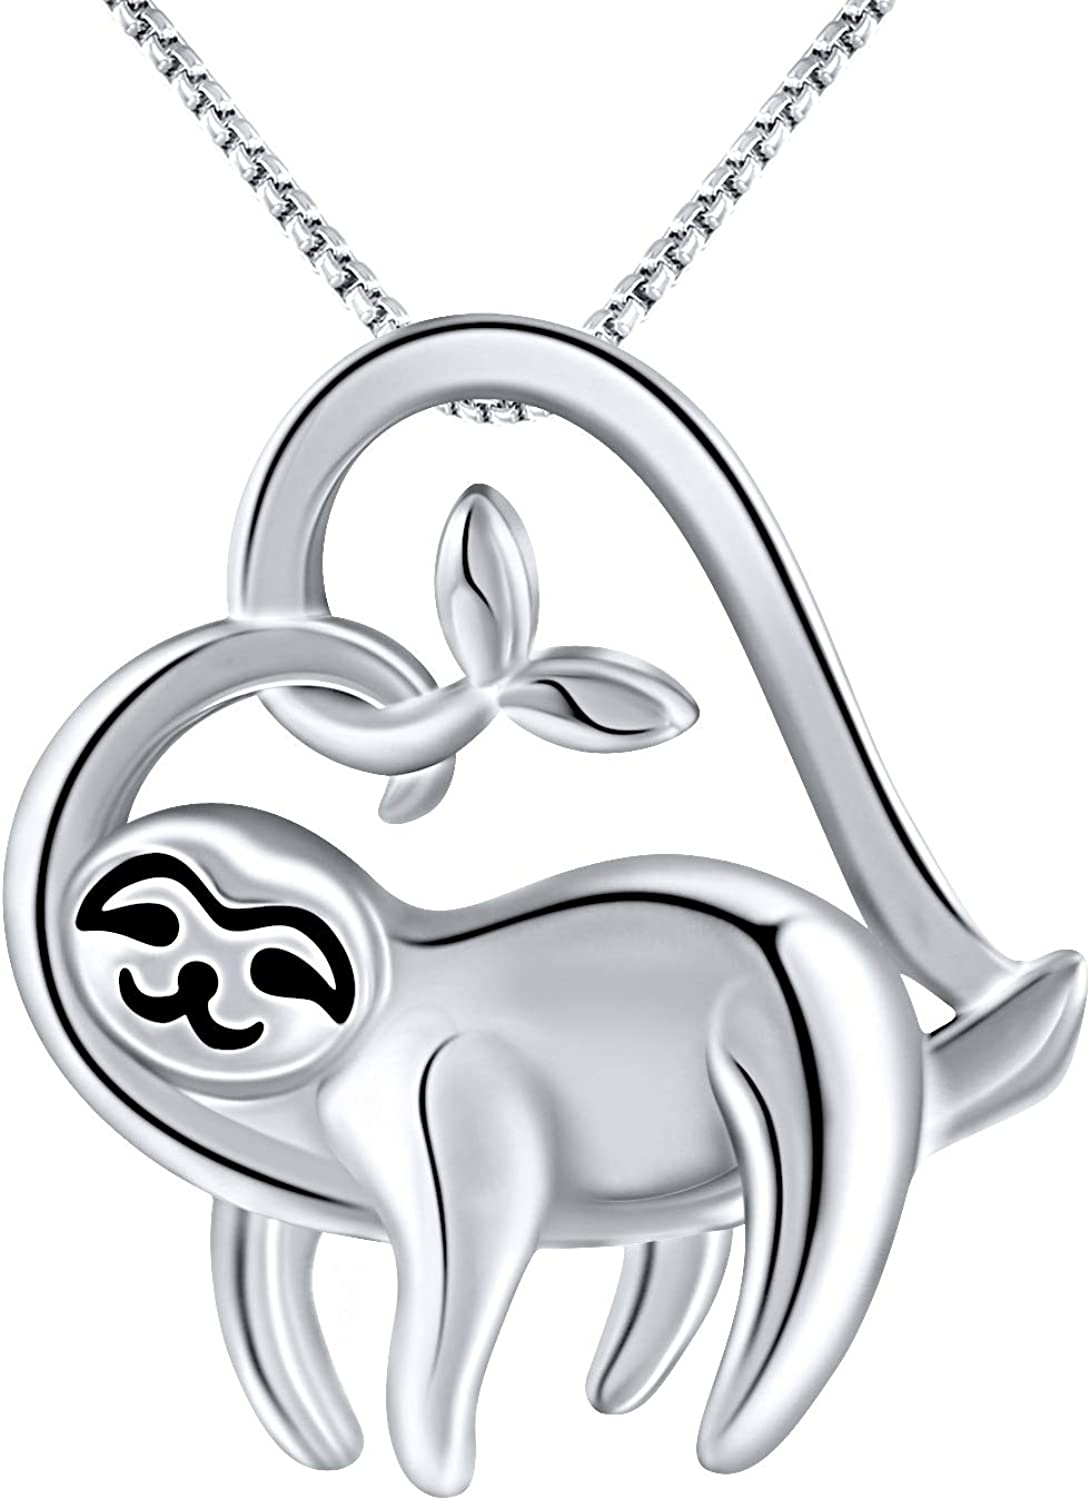 GRECIA White Gold Plated Sloth Necklace for Women Love Heart Pendant Gift for Her, Cute Sloth Jewelry Gifts for Girlfriend, Wife, Sister, Grandma, Mom